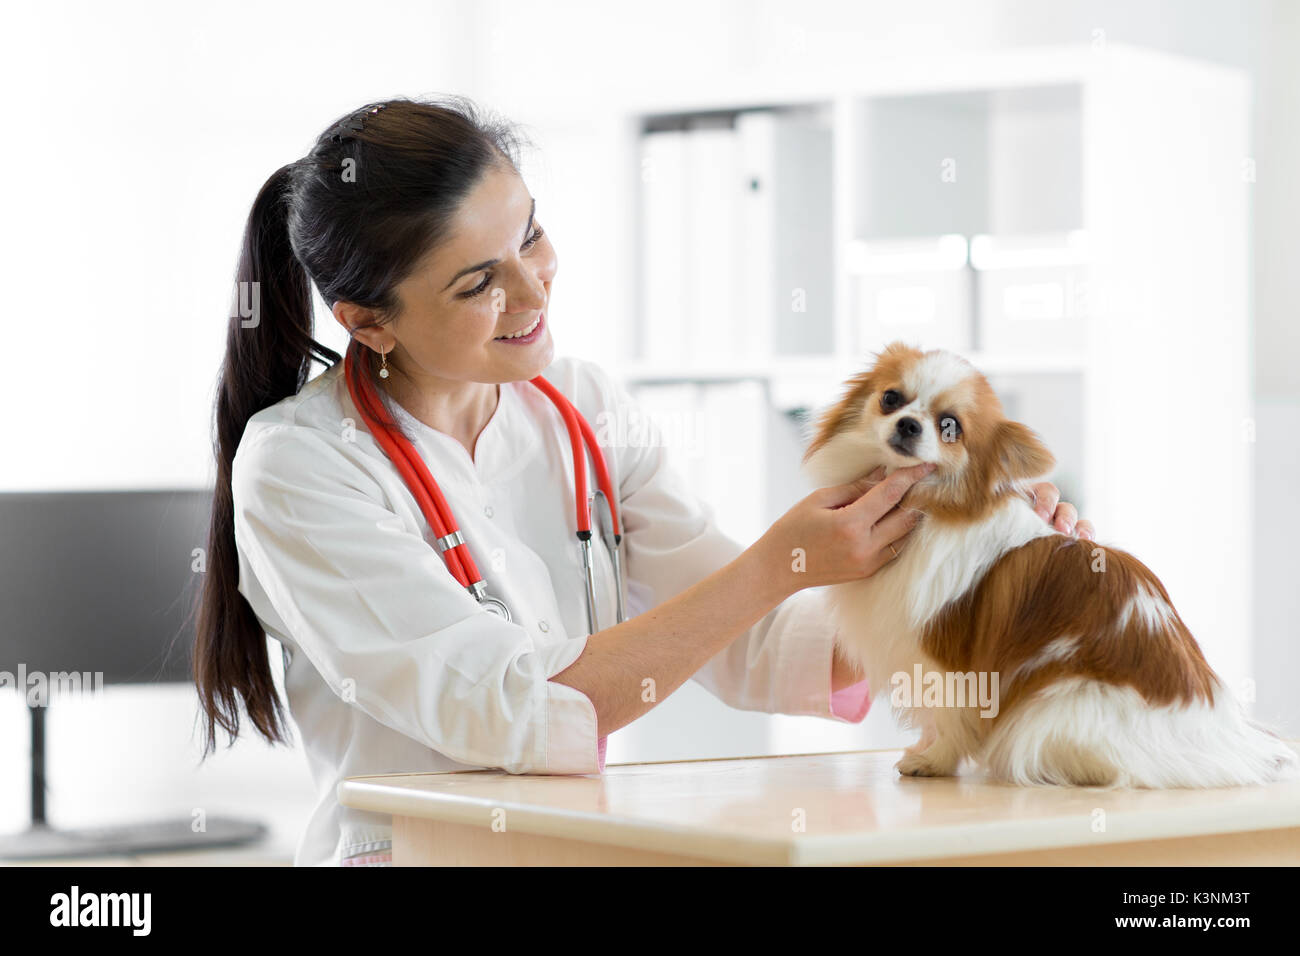 smiling Veterinarian with dog, on table in vet clinic - Stock Image